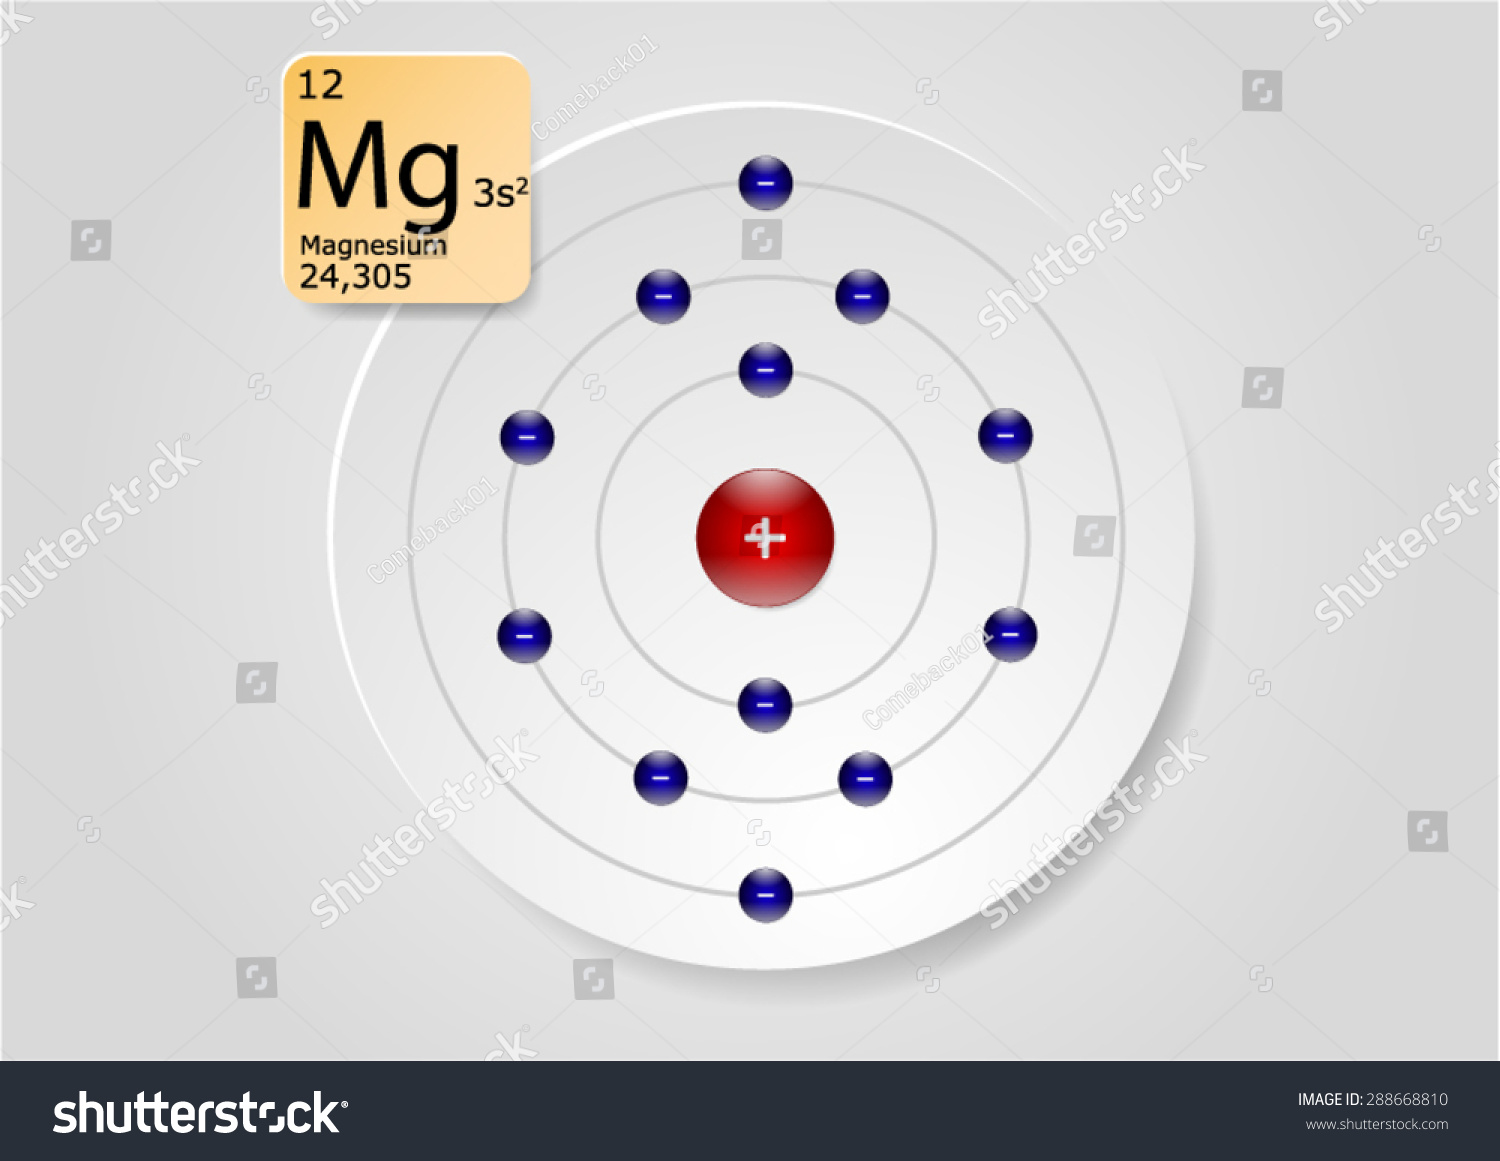 hight resolution of mg magnesium atom periodic table